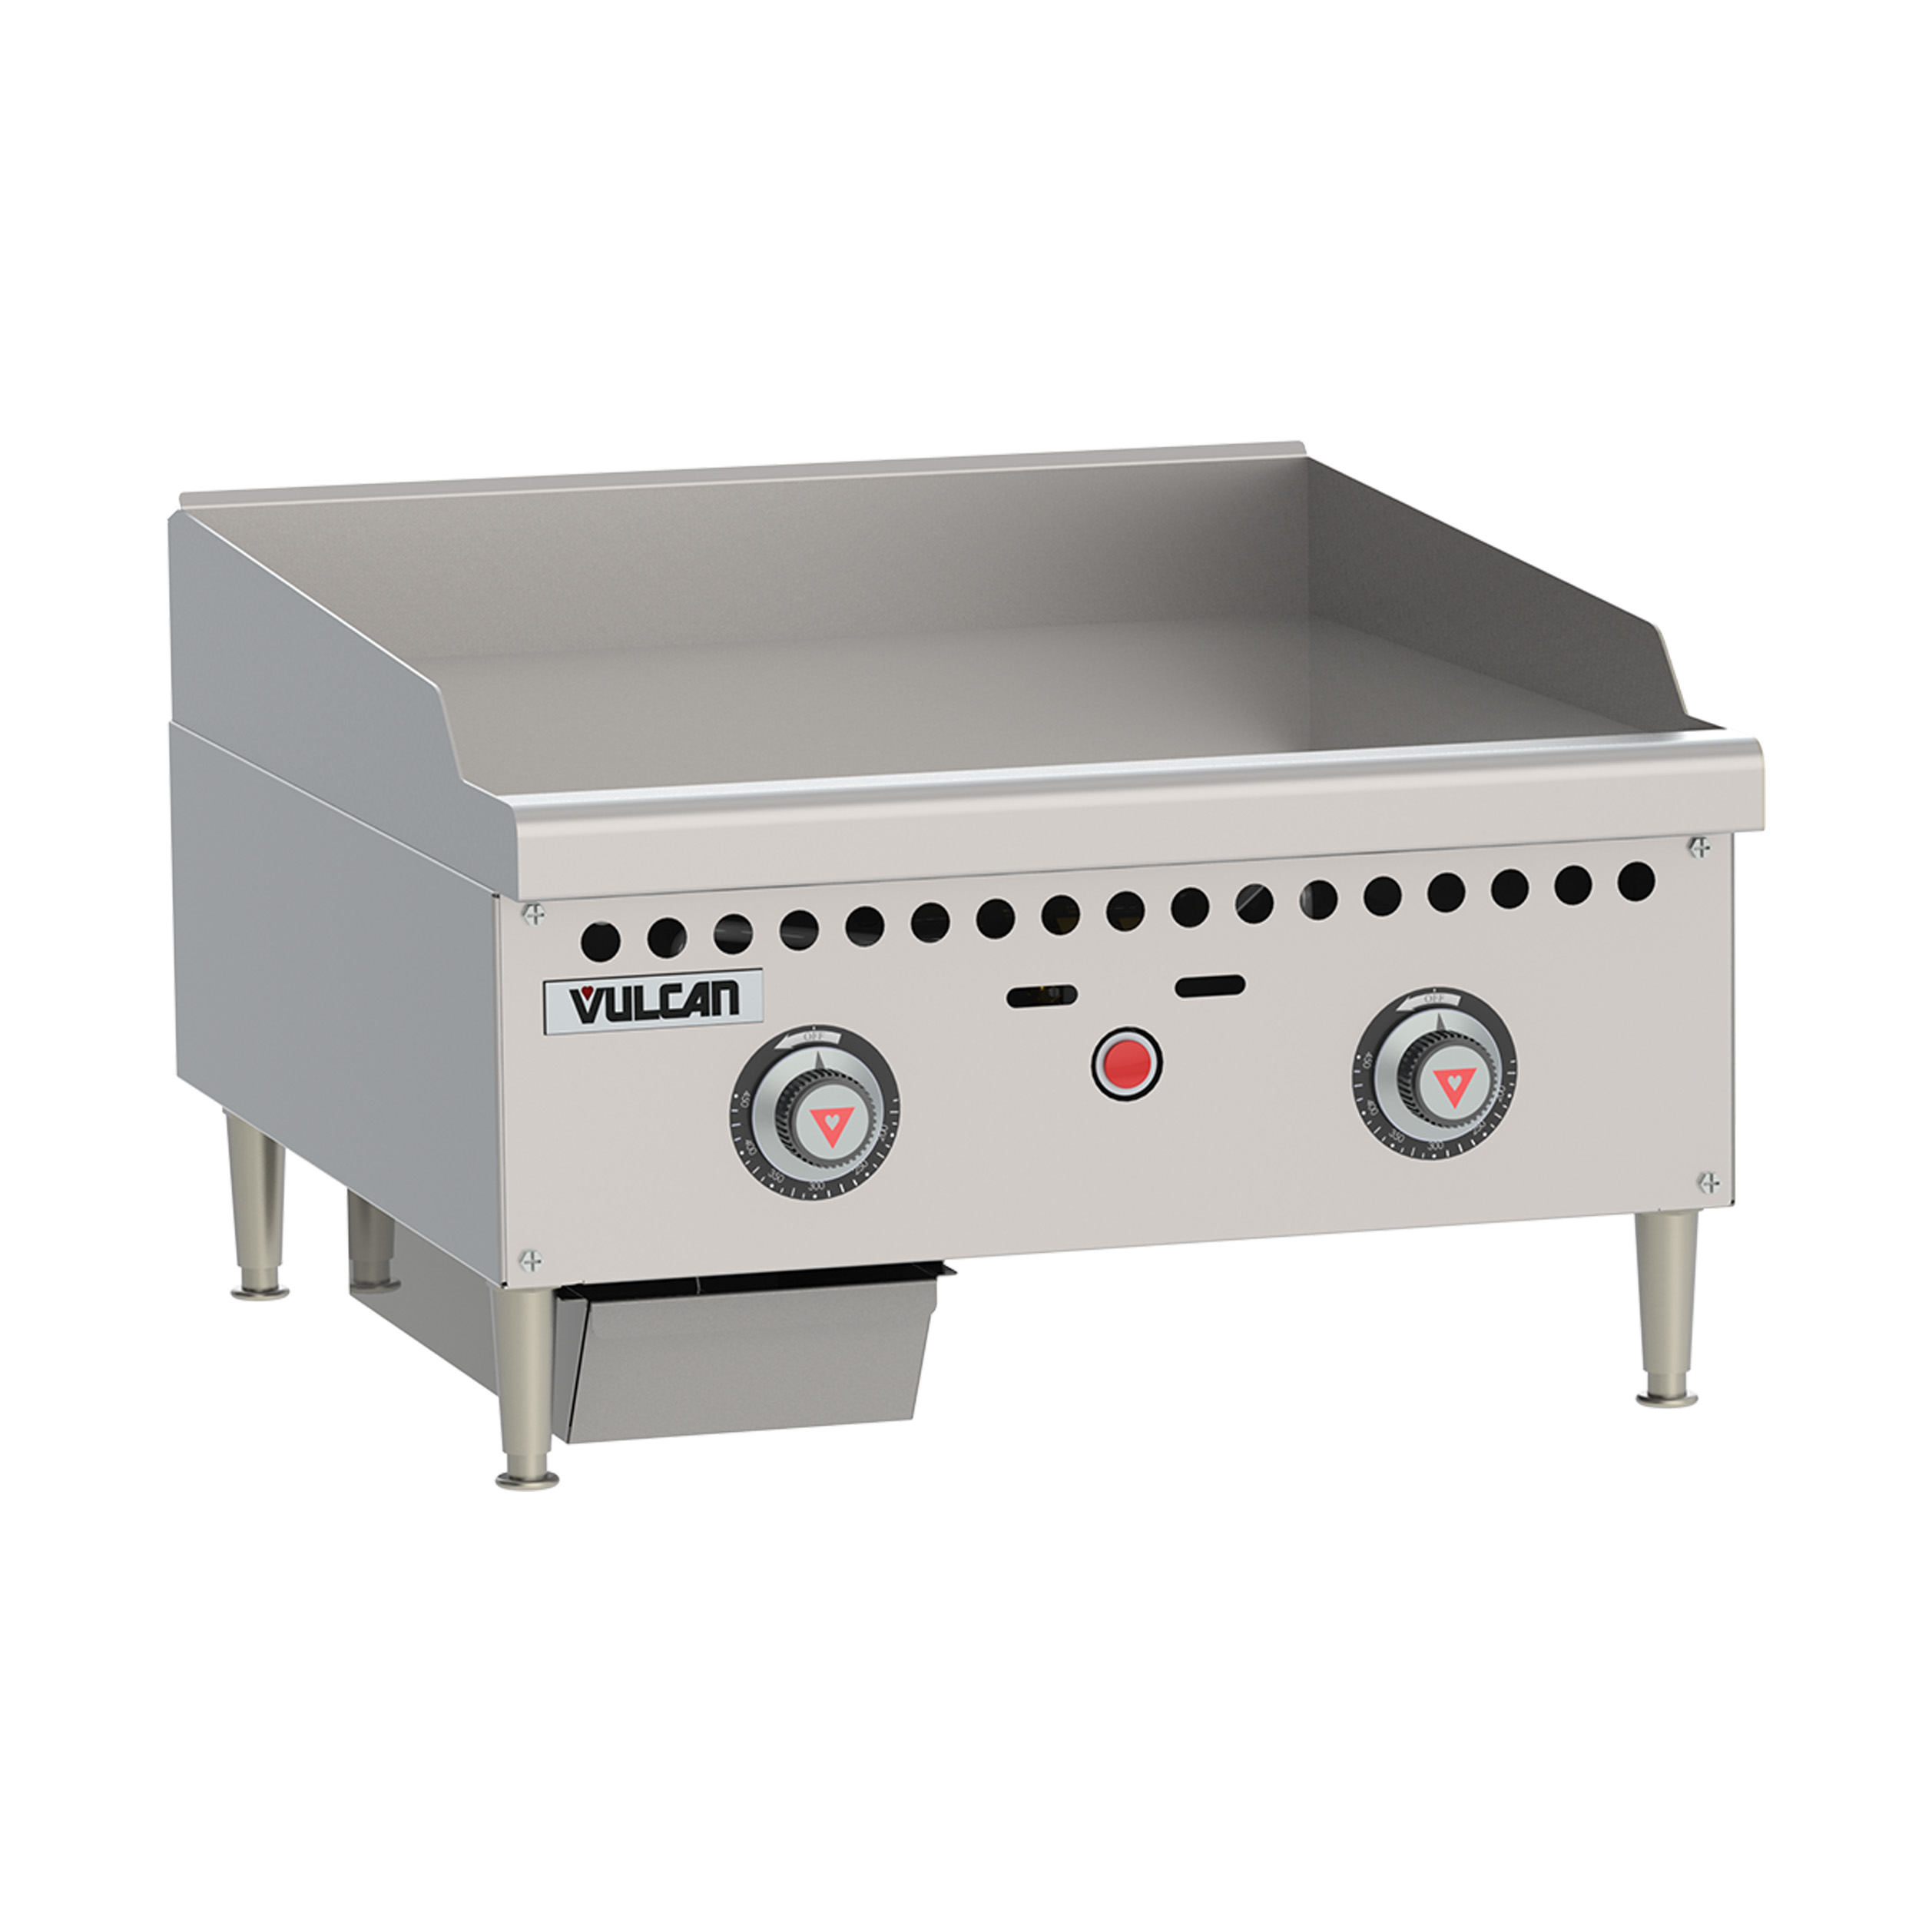 Vulcan VCRG48-T griddle, gas, countertop